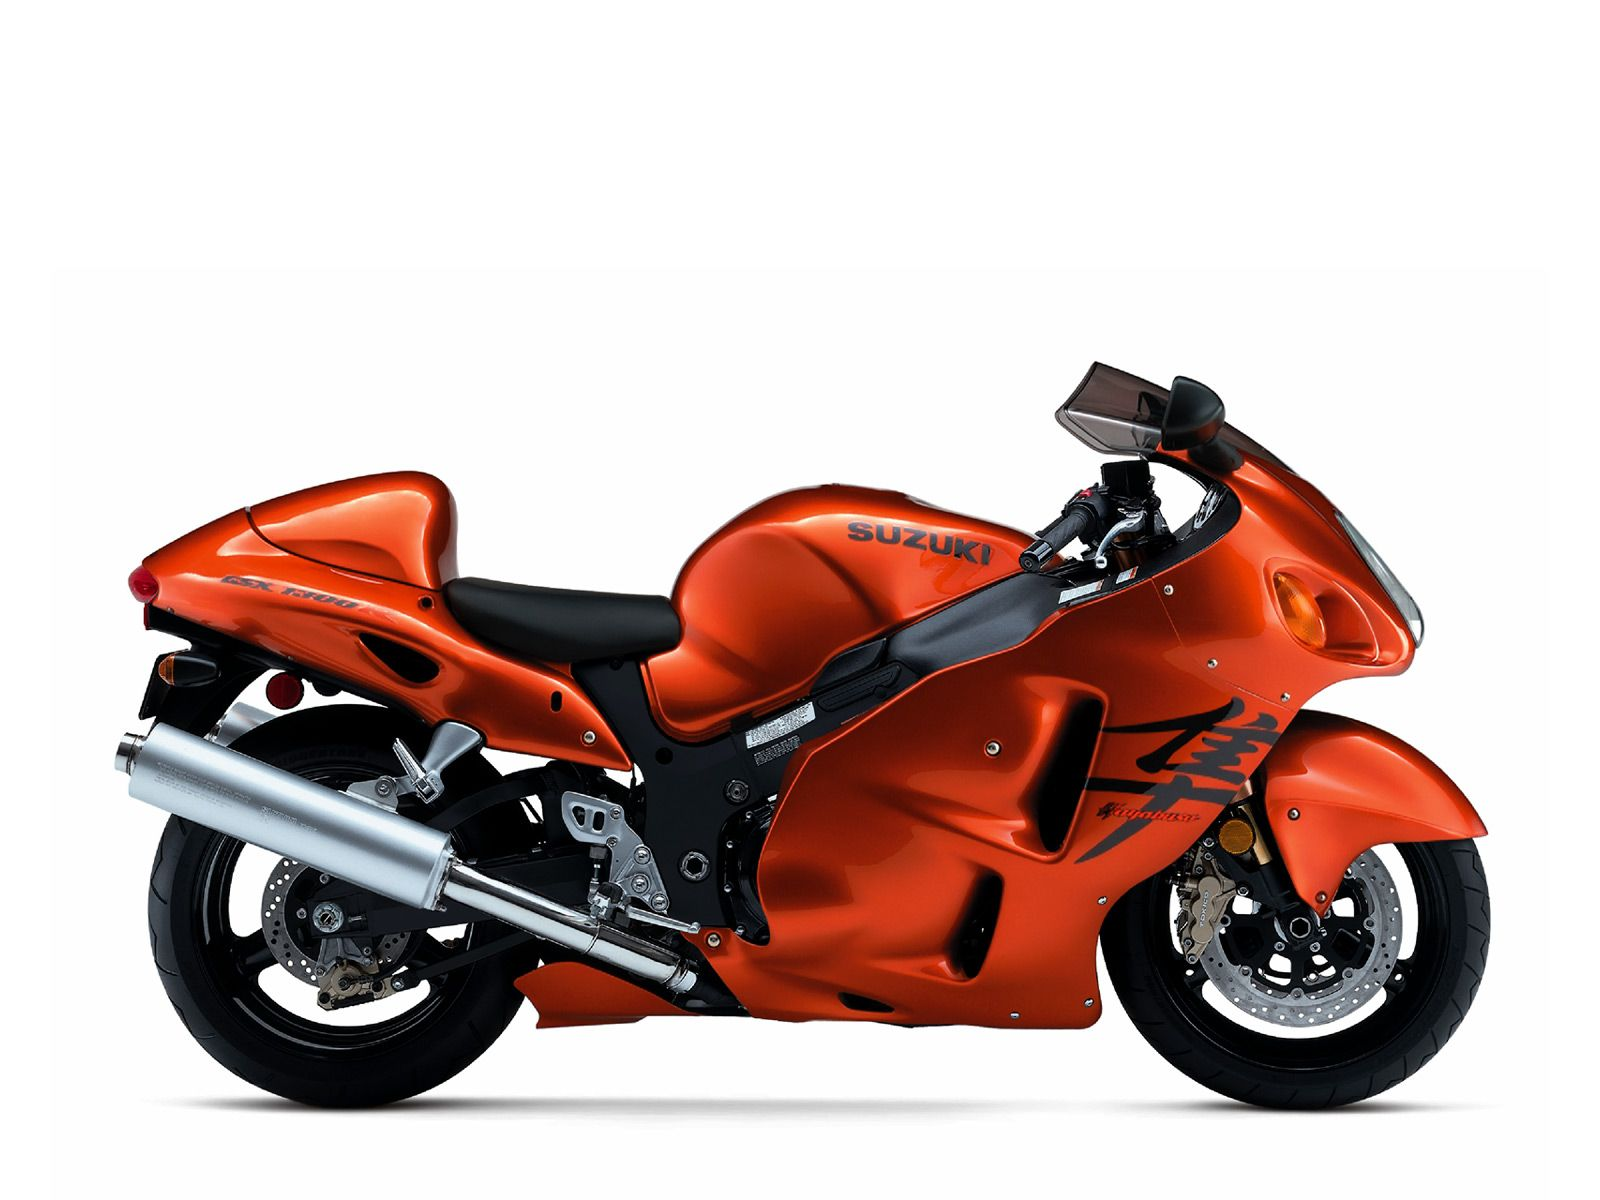 Merveilleux Orange Motorcycle Suzuki Hayabusa GSX 1300 R. Sexy Bike I Swear!